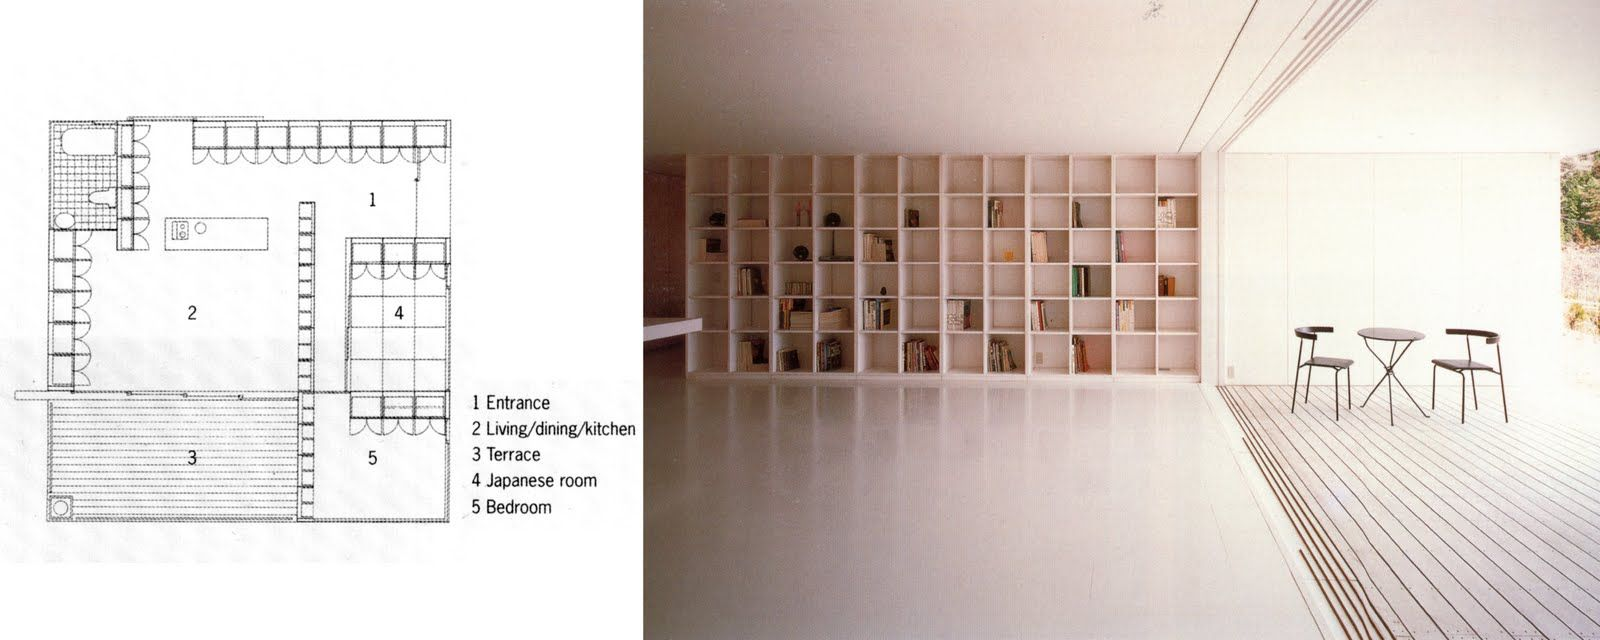 Charming The Furniture House, Shigeru Ban